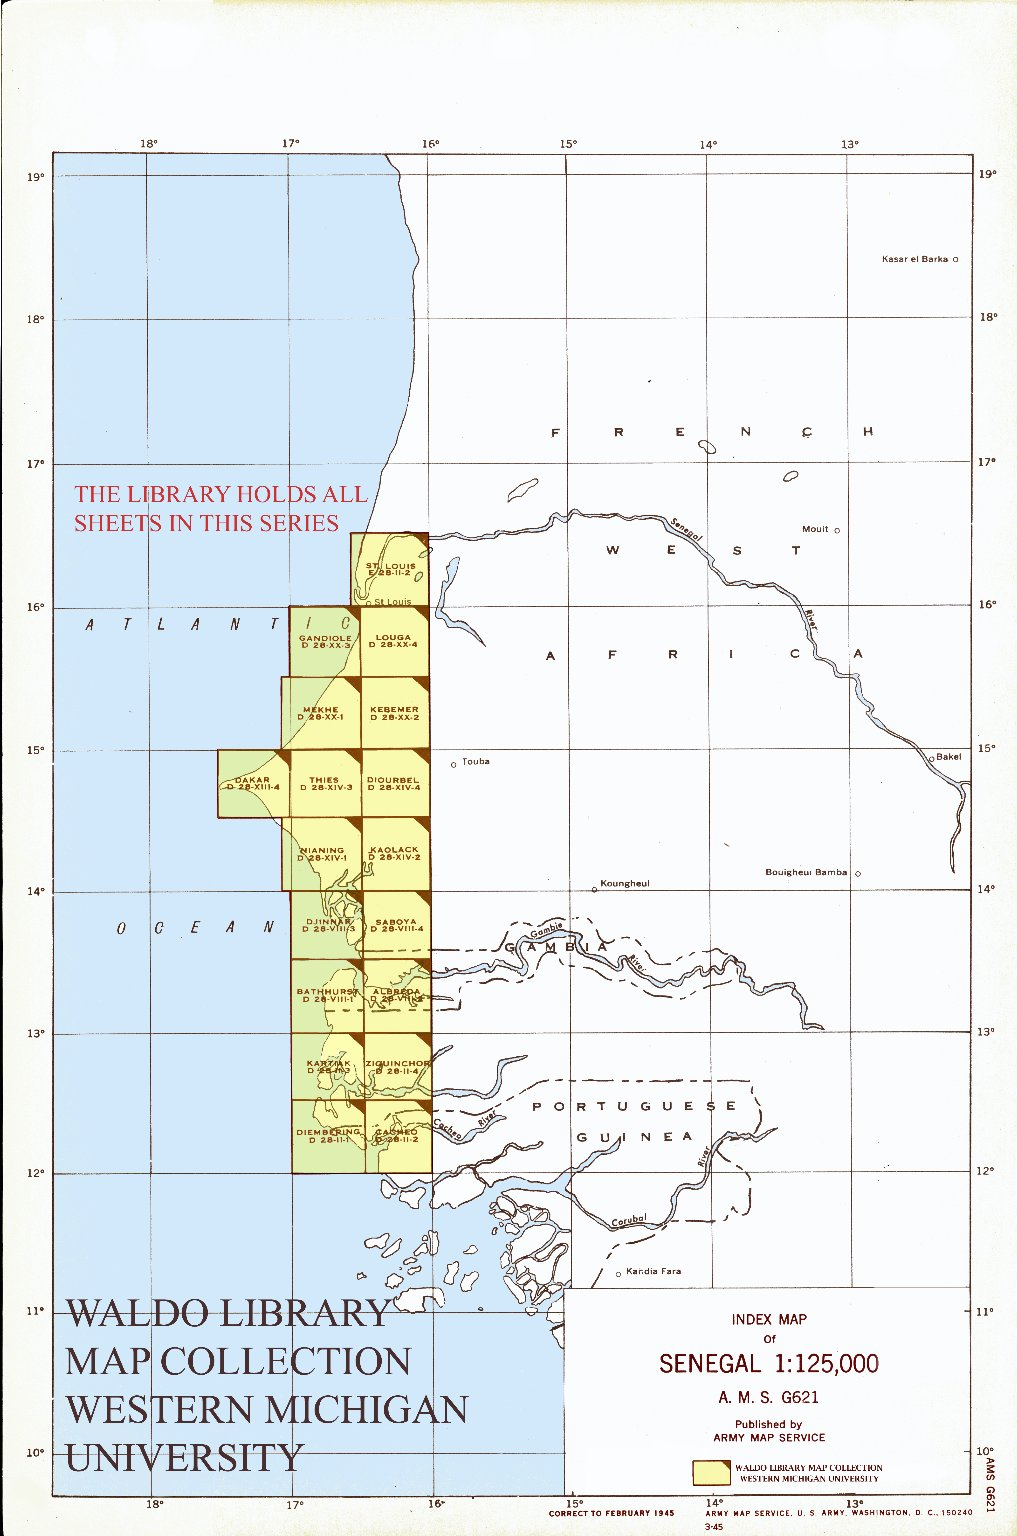 Index map of Senegal 1:125,000